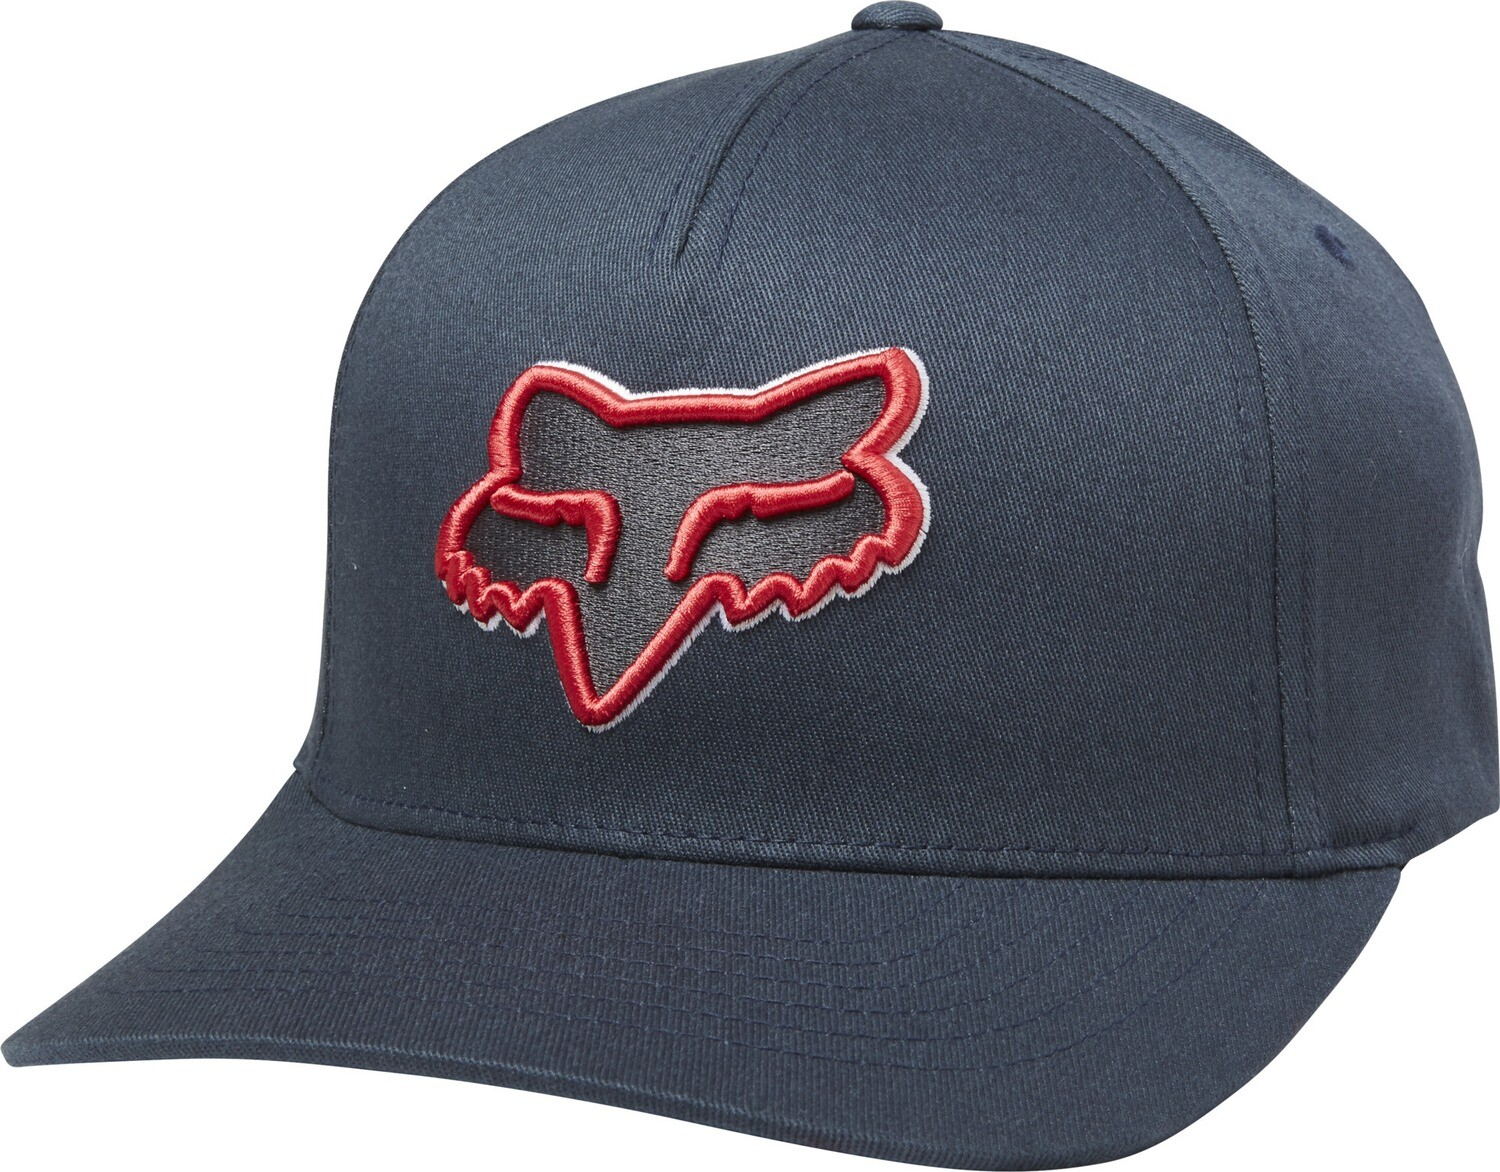 GORRA FOX EPICYCLE FF  NVY RD